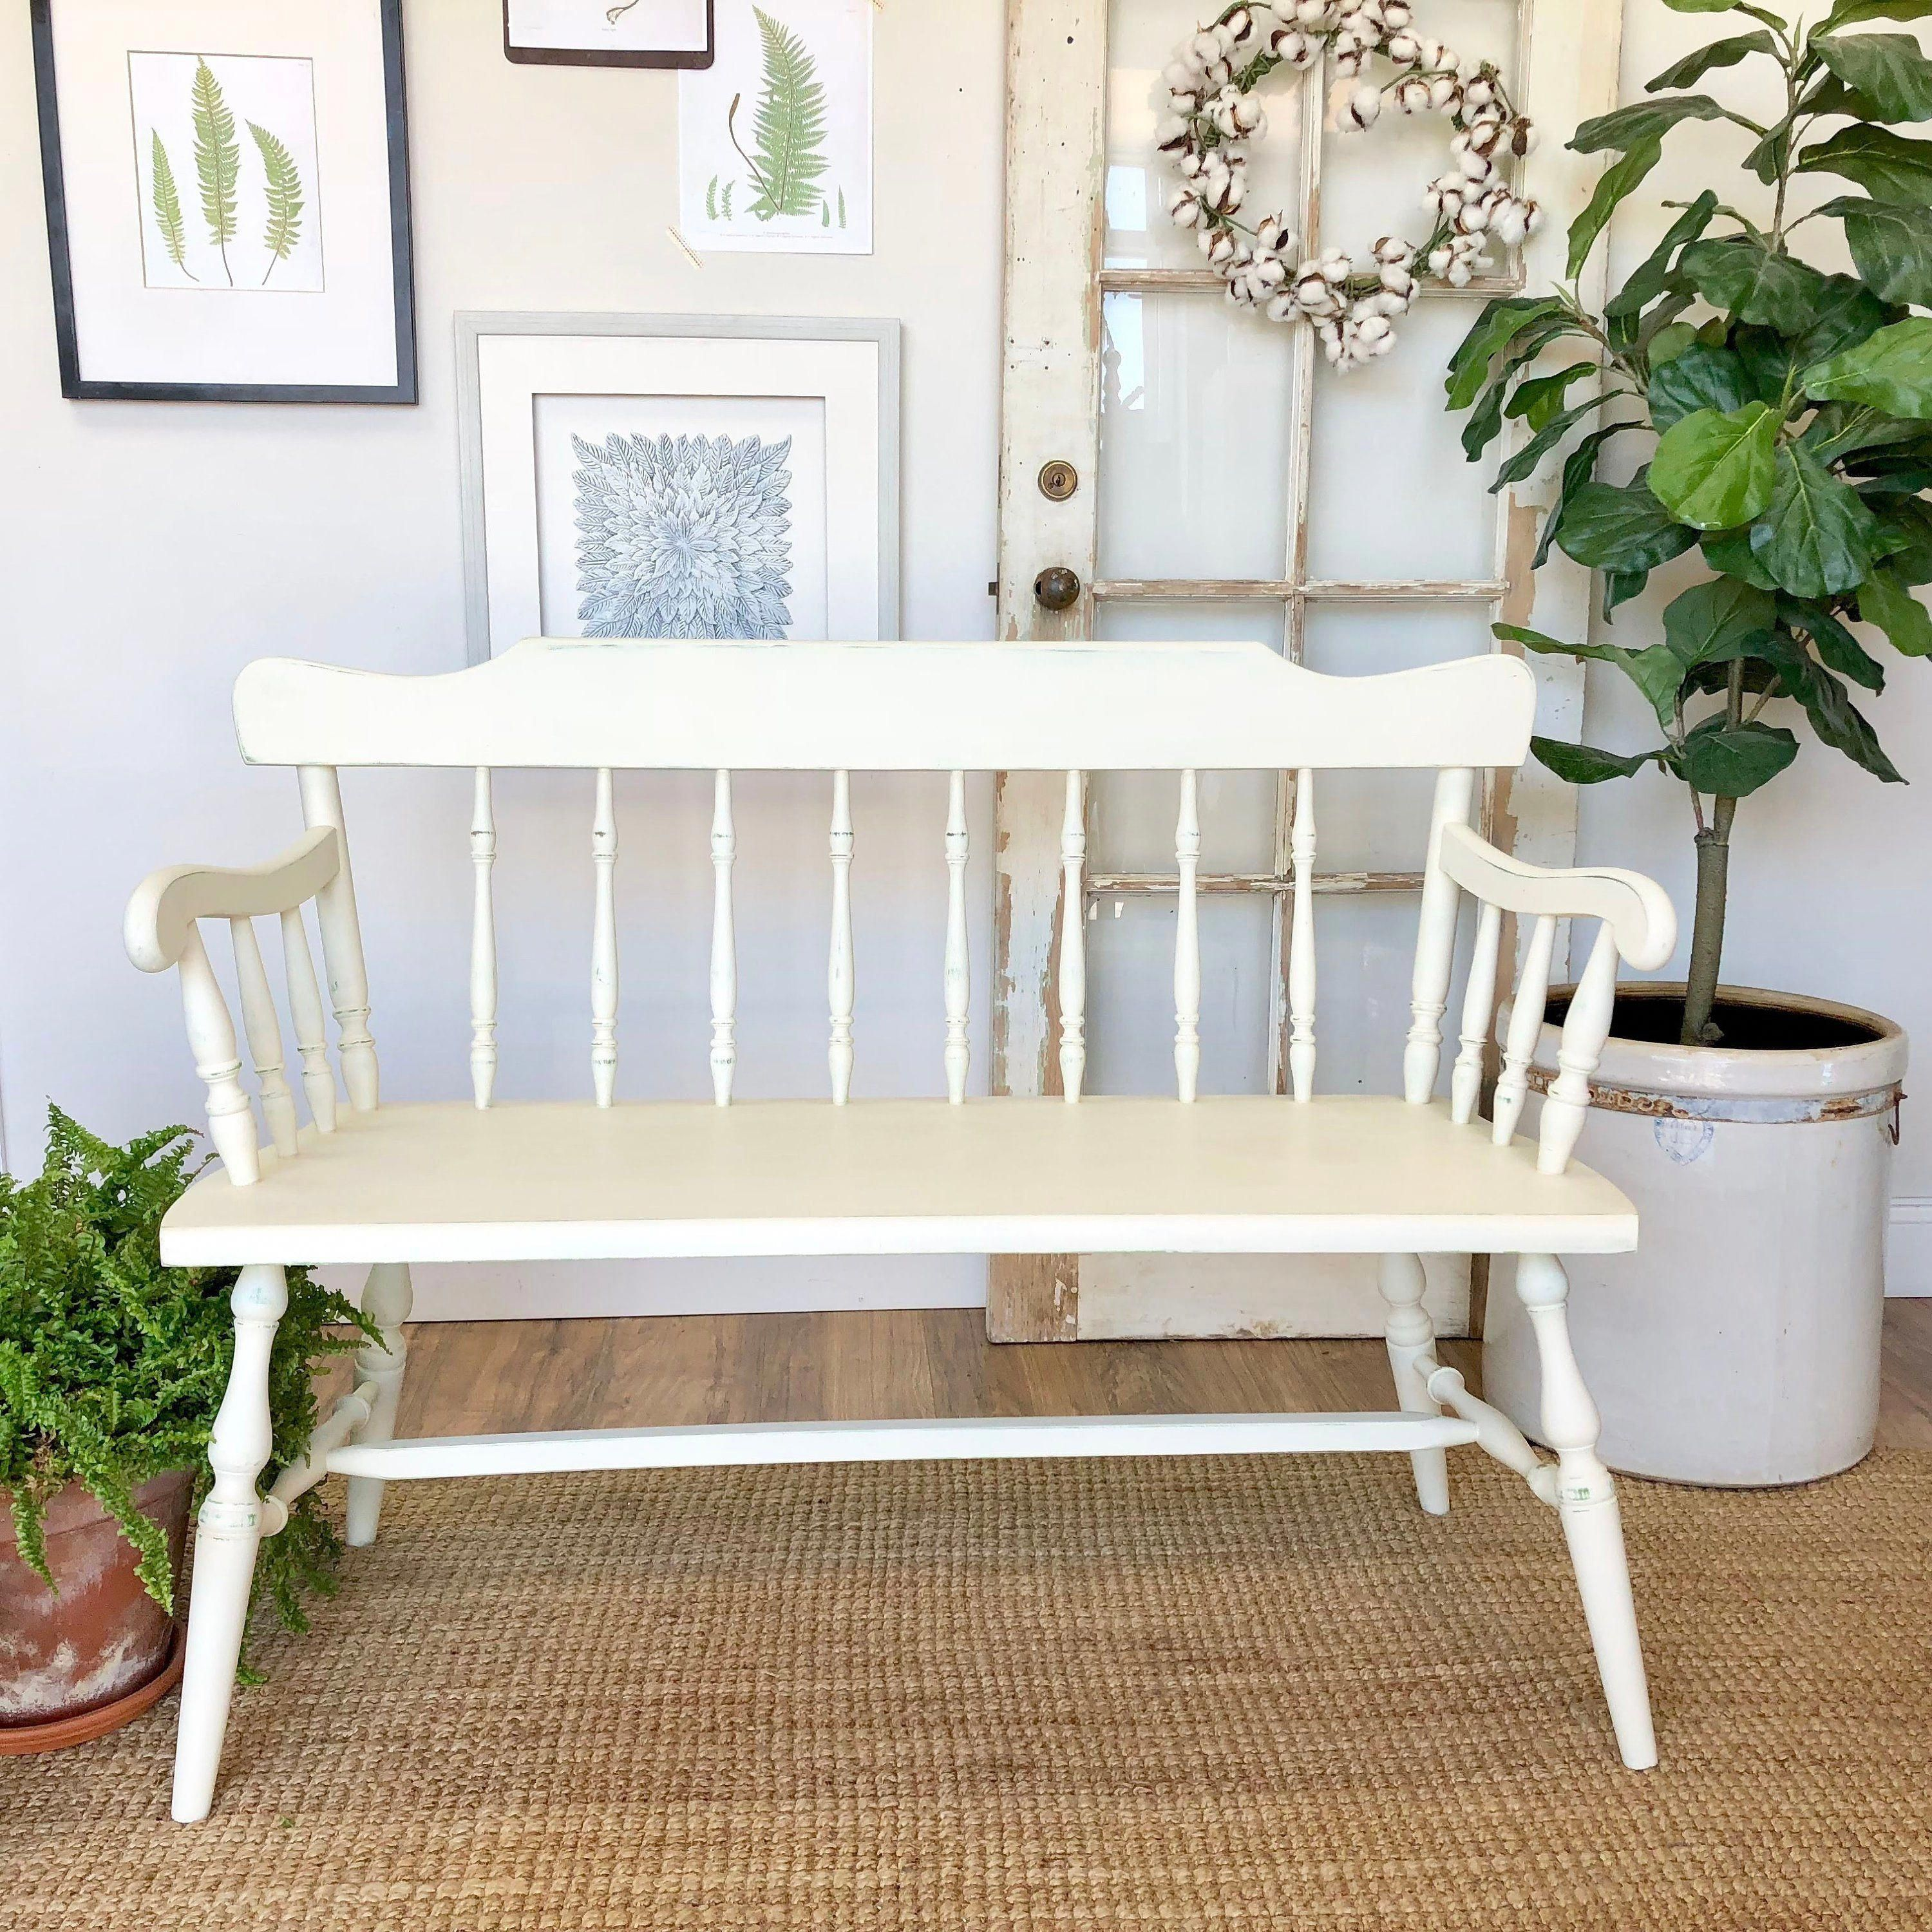 Stupendous Small White Wooden Bench With Spindle Back Farmhouse Bench Uwap Interior Chair Design Uwaporg